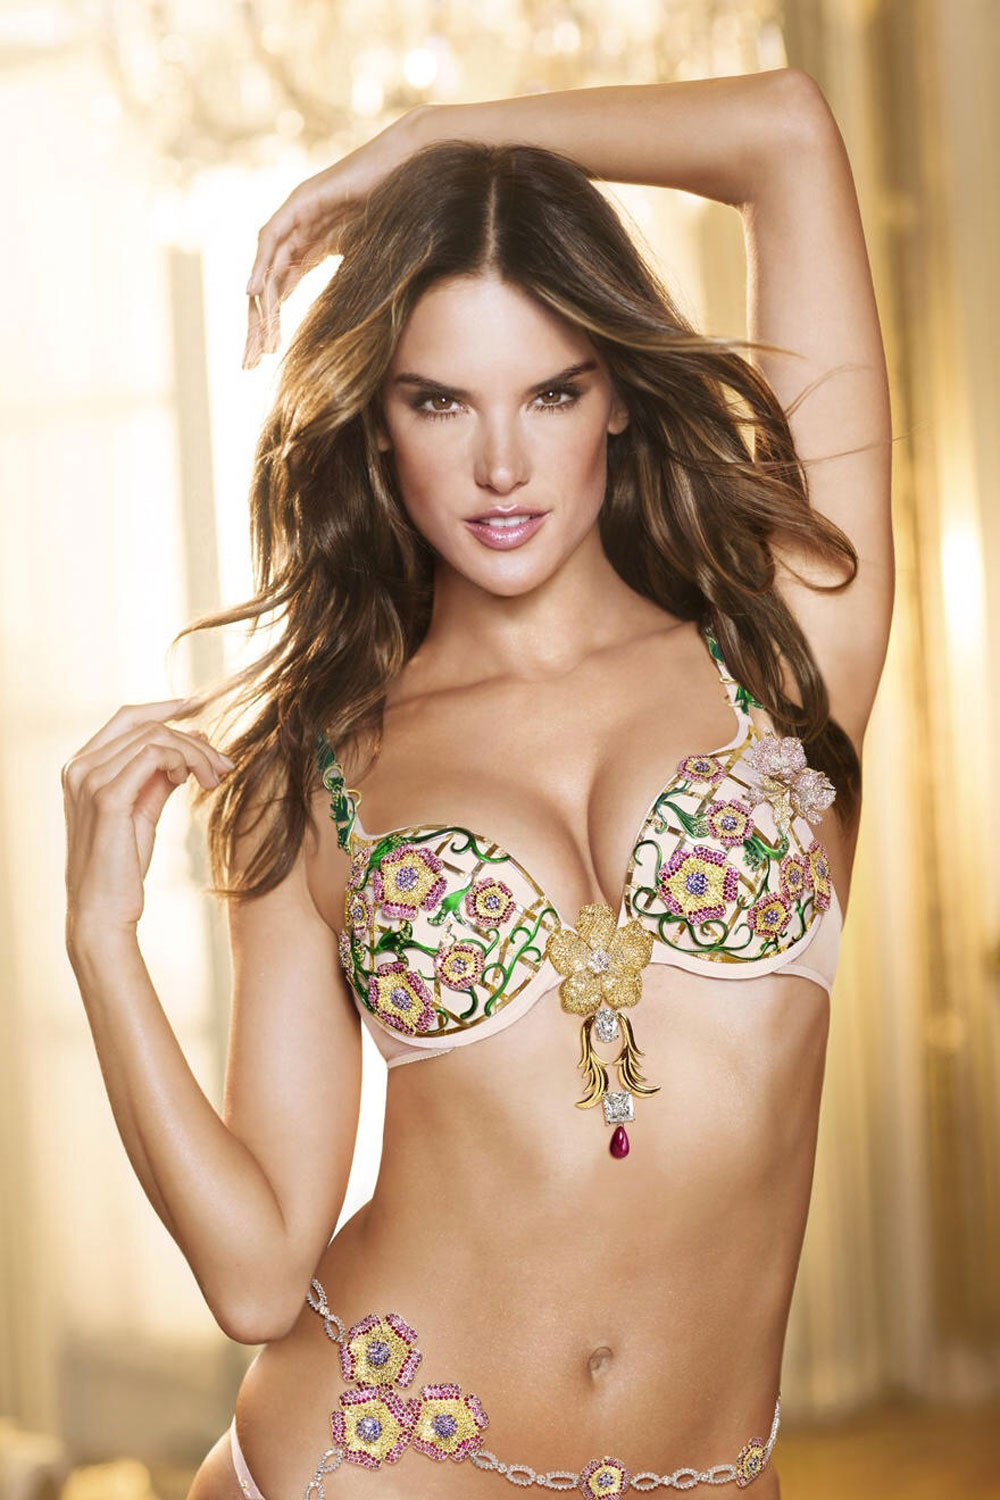 Alessandra-Ambrosio-poses-in-a-$2.5-million-Fantasy-Bra